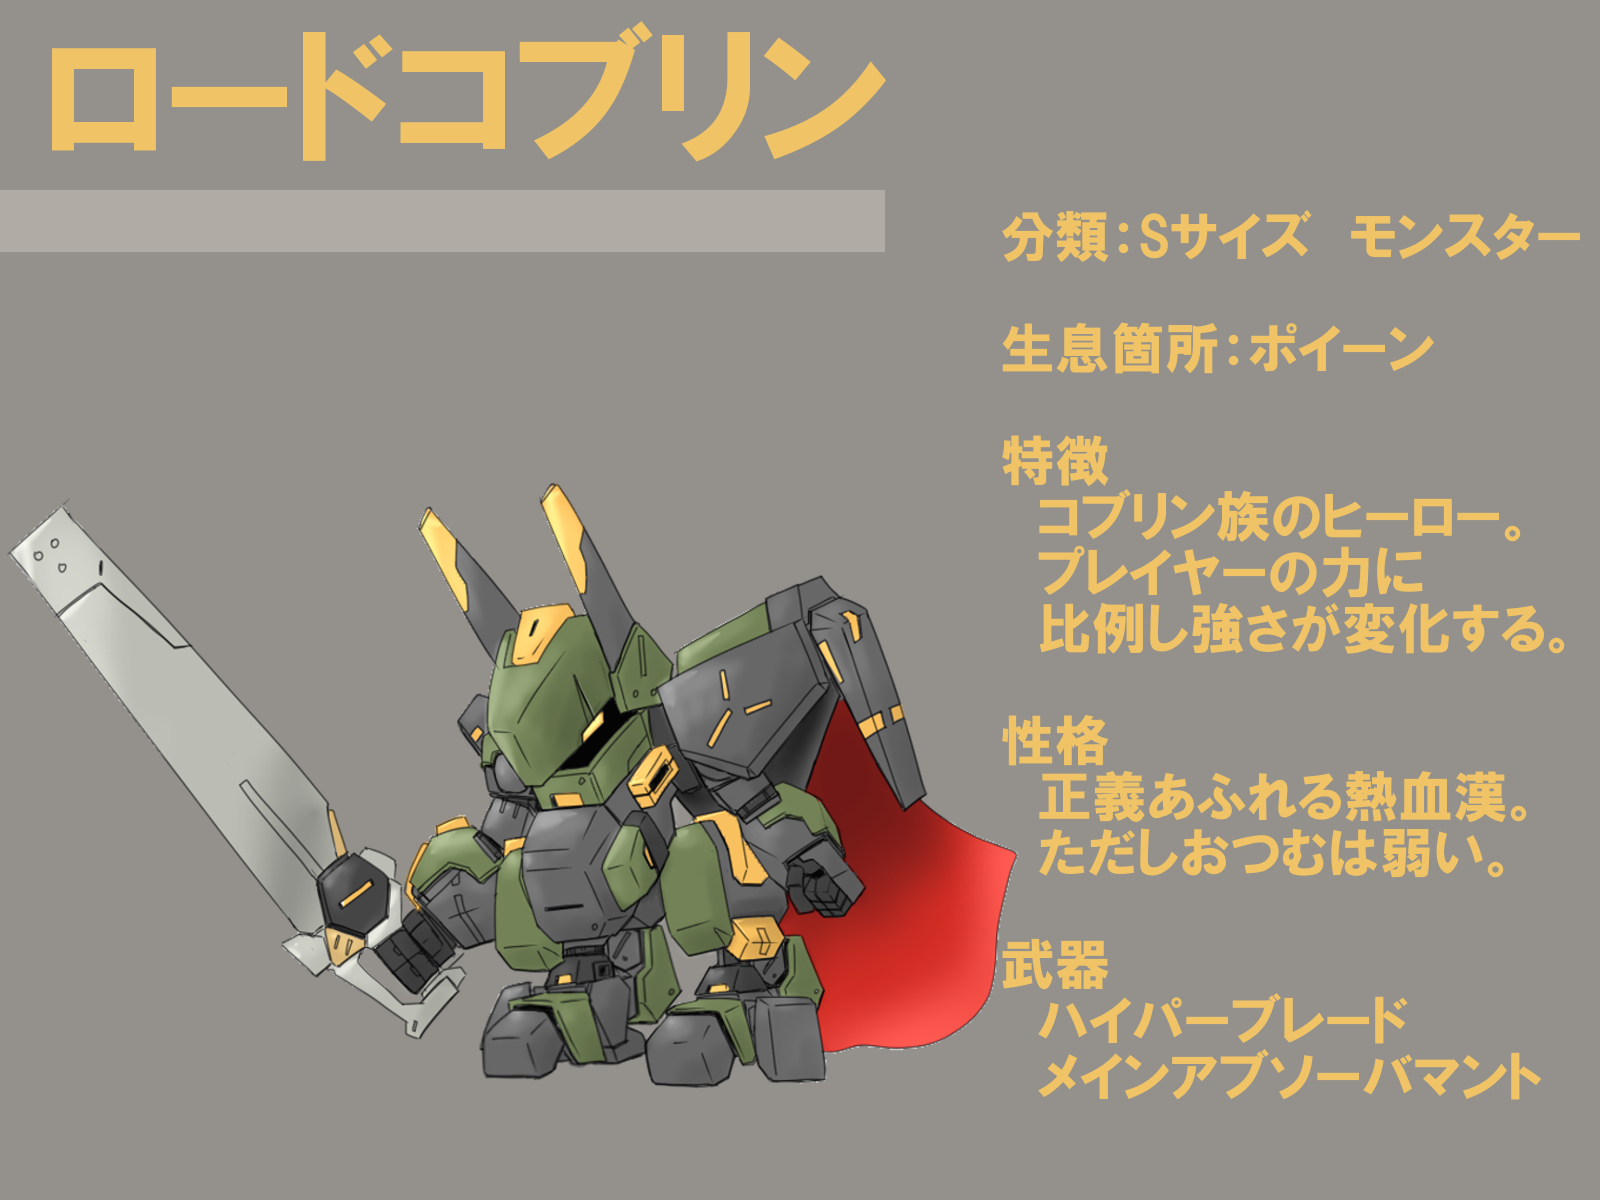 weapon and enemy design contest results Img.php?filename=tc_1339555_1_1384962988